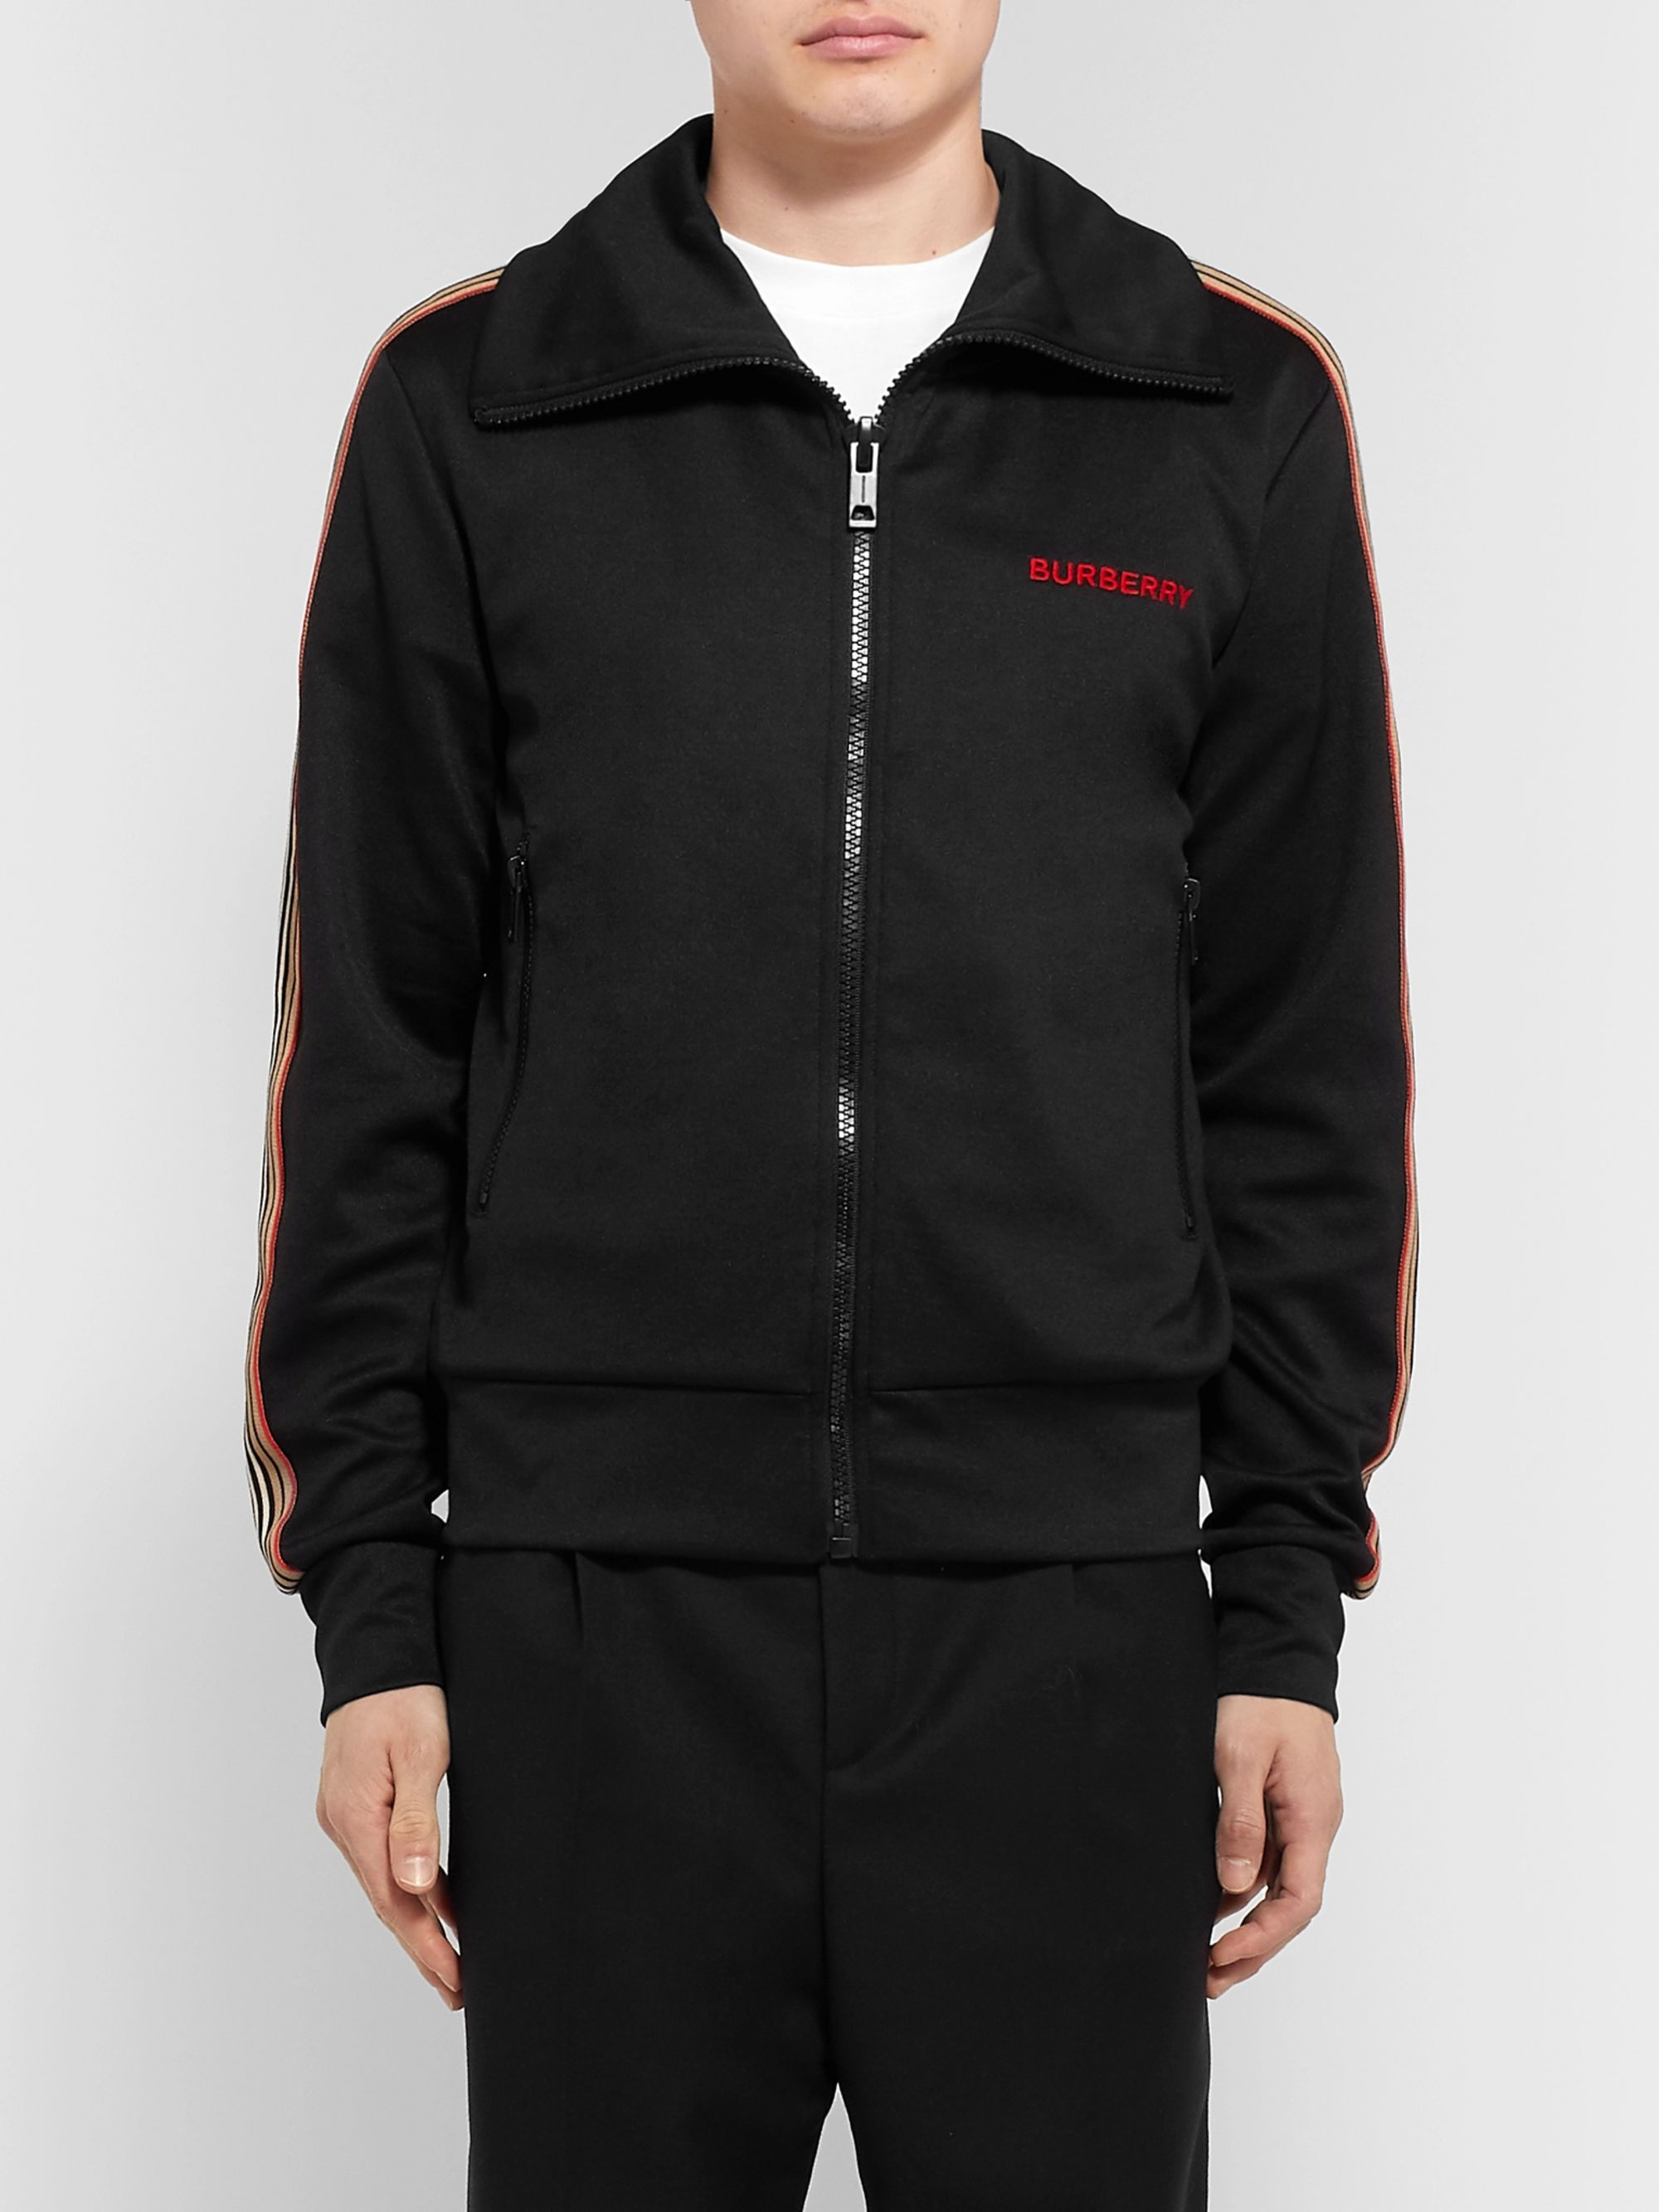 Burberry Webbing-Trimmed Tech-Jersey Track Jacket